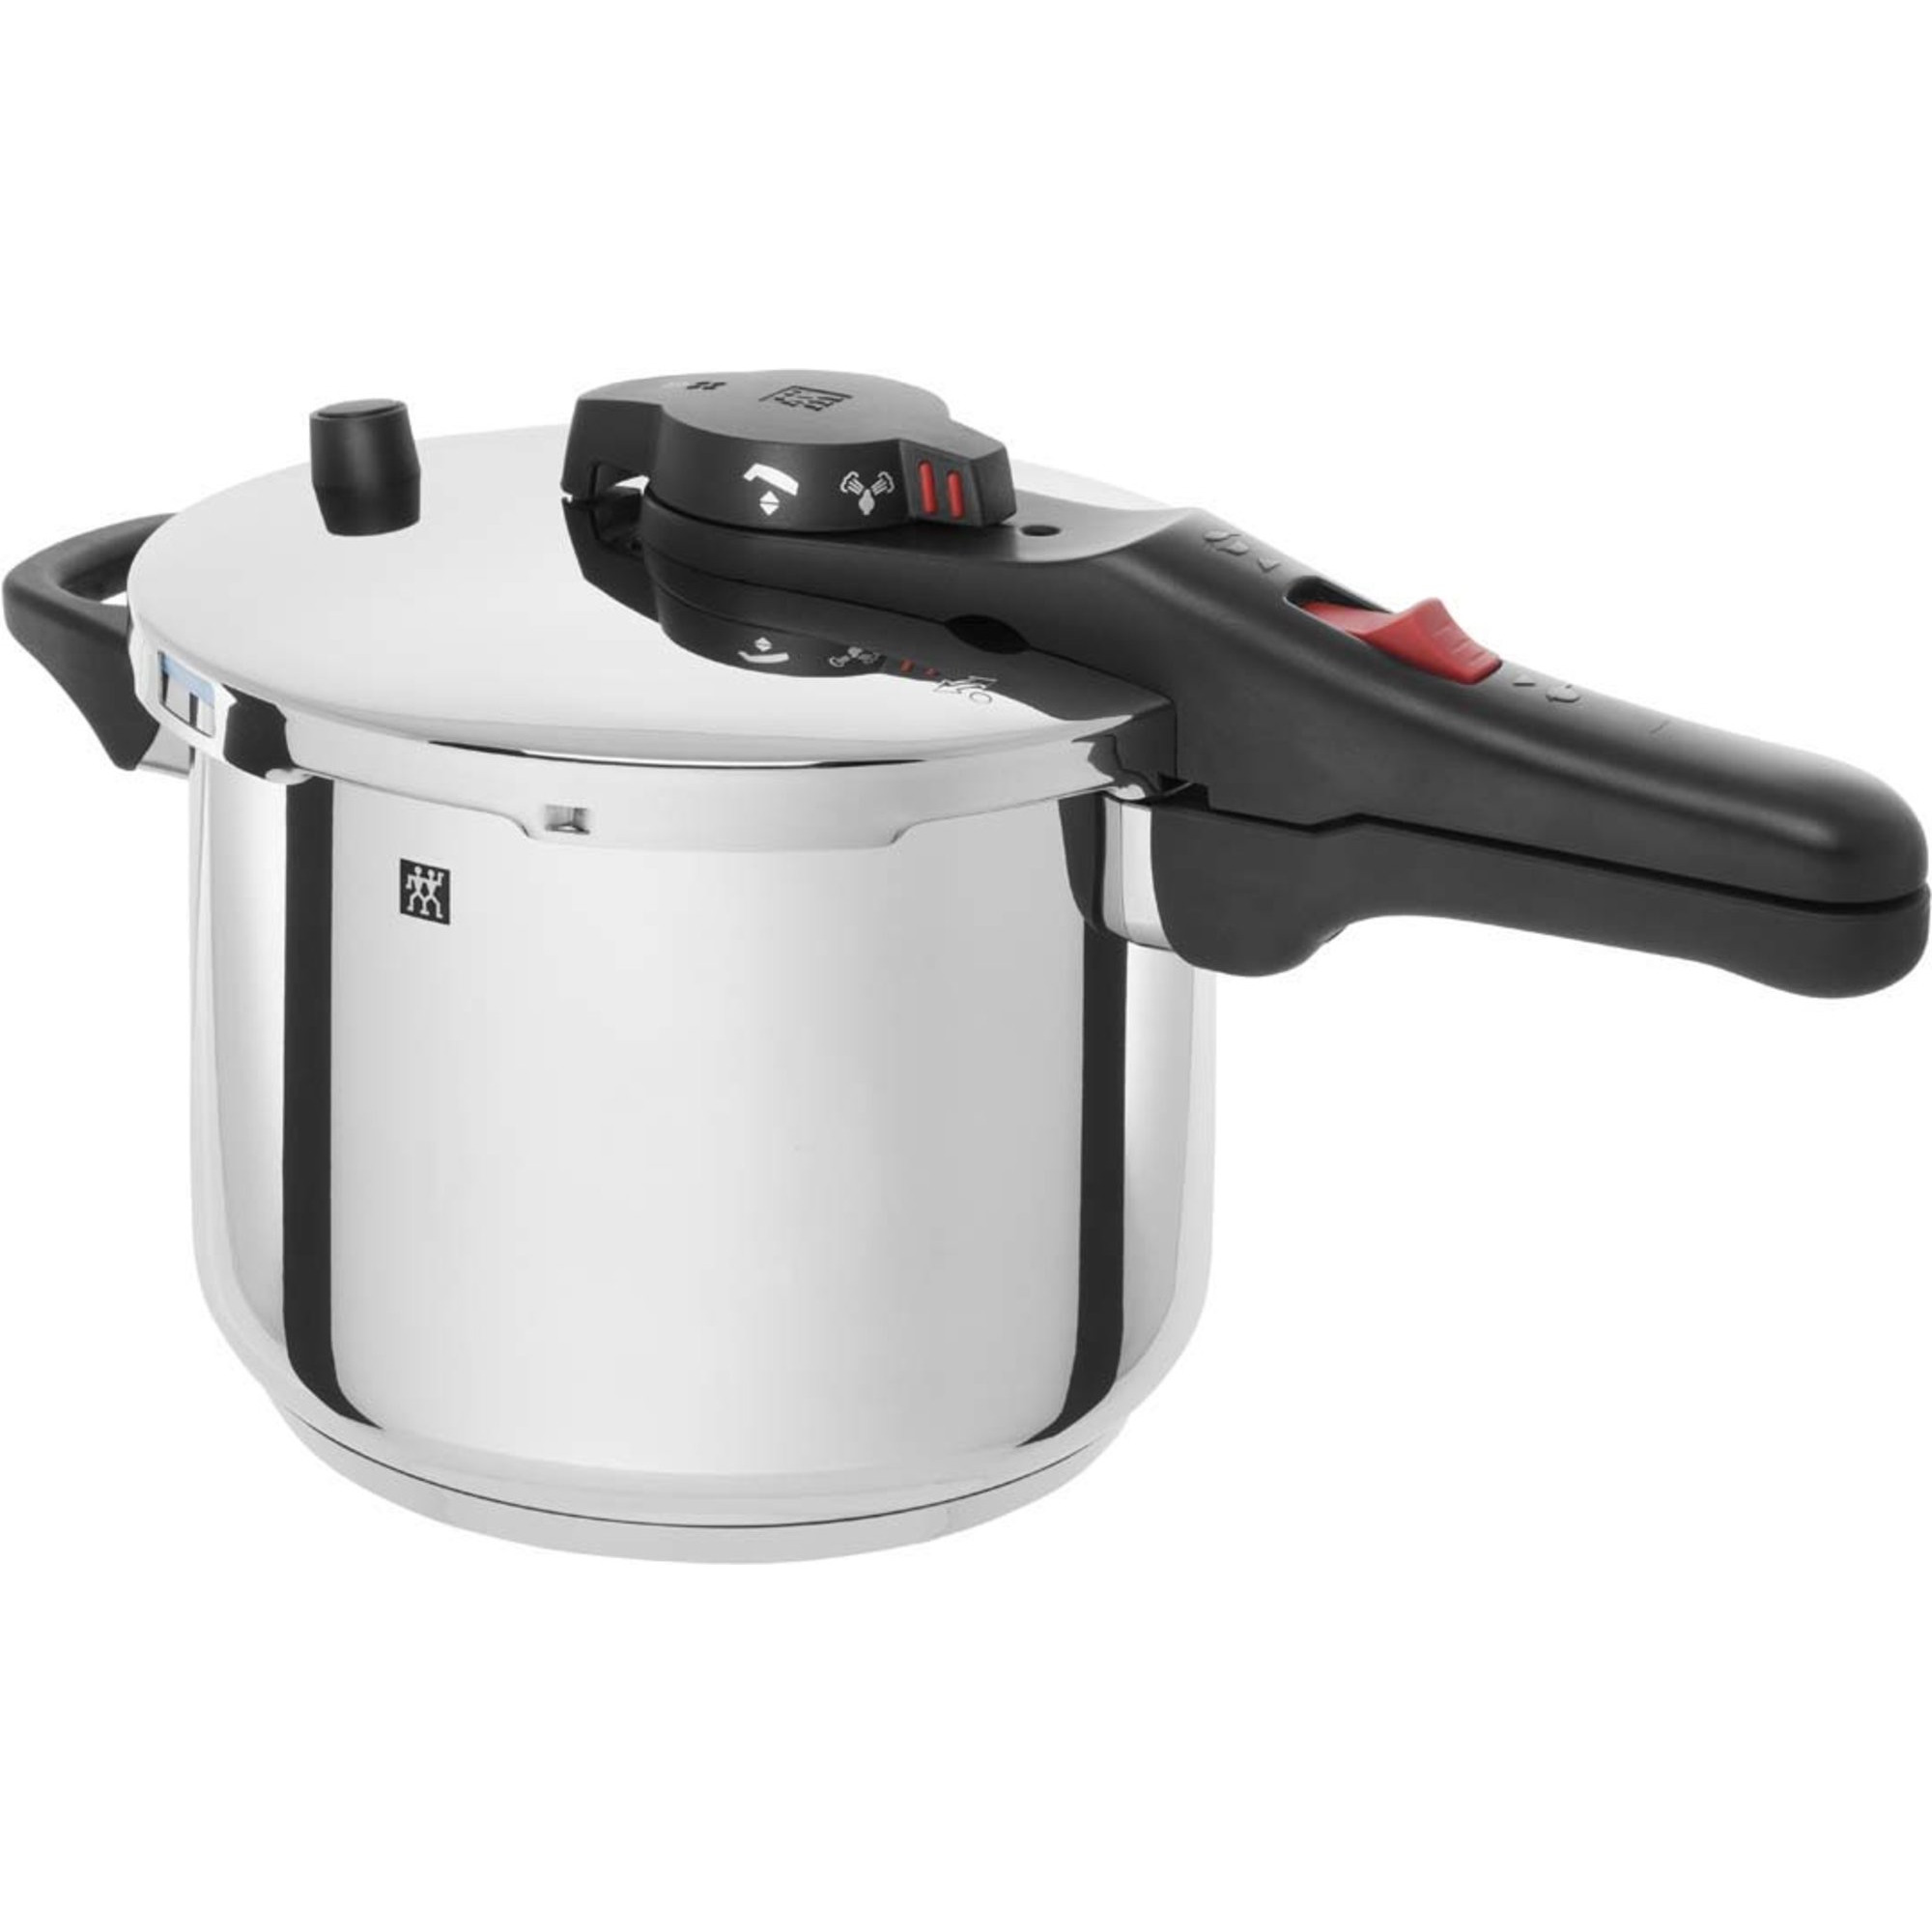 Zwilling AirControl Tryckkokare 22 cm 6 l